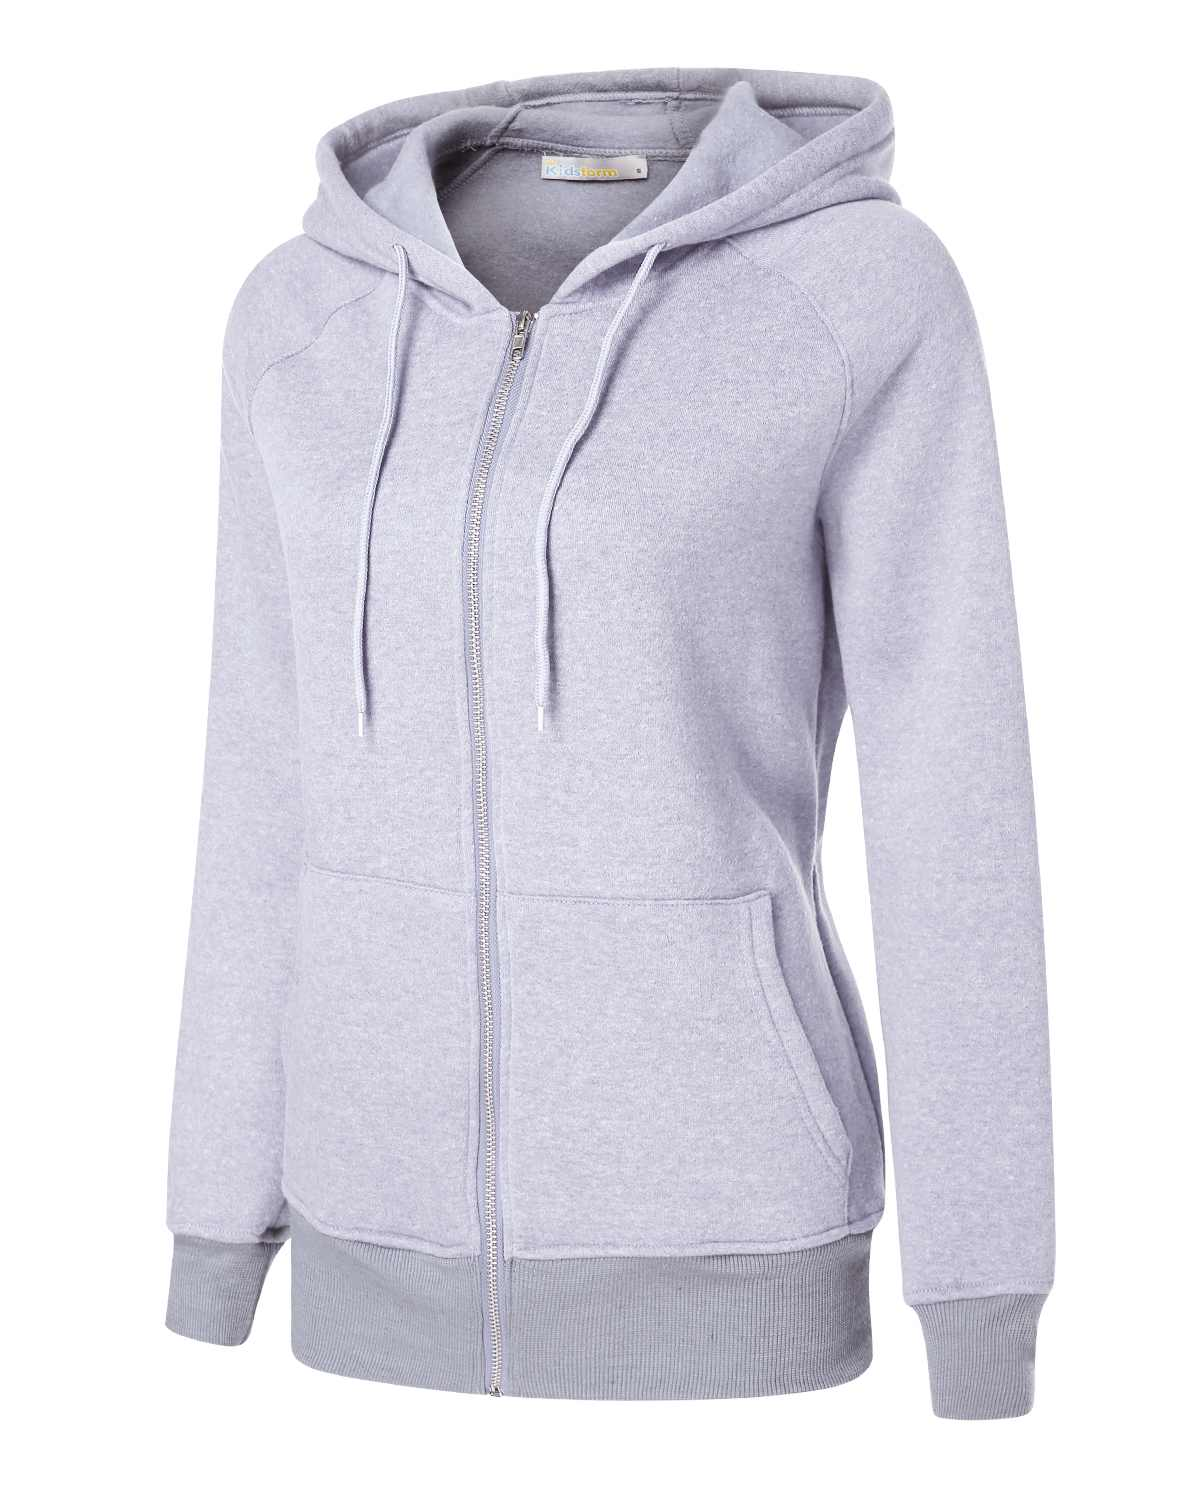 Women Warm Zipper Design Hoodies Sweatshirt Casual Loose Long Sleeve Hooded Sweatshirt Solid Color Hoodies Overcoat Plus Size